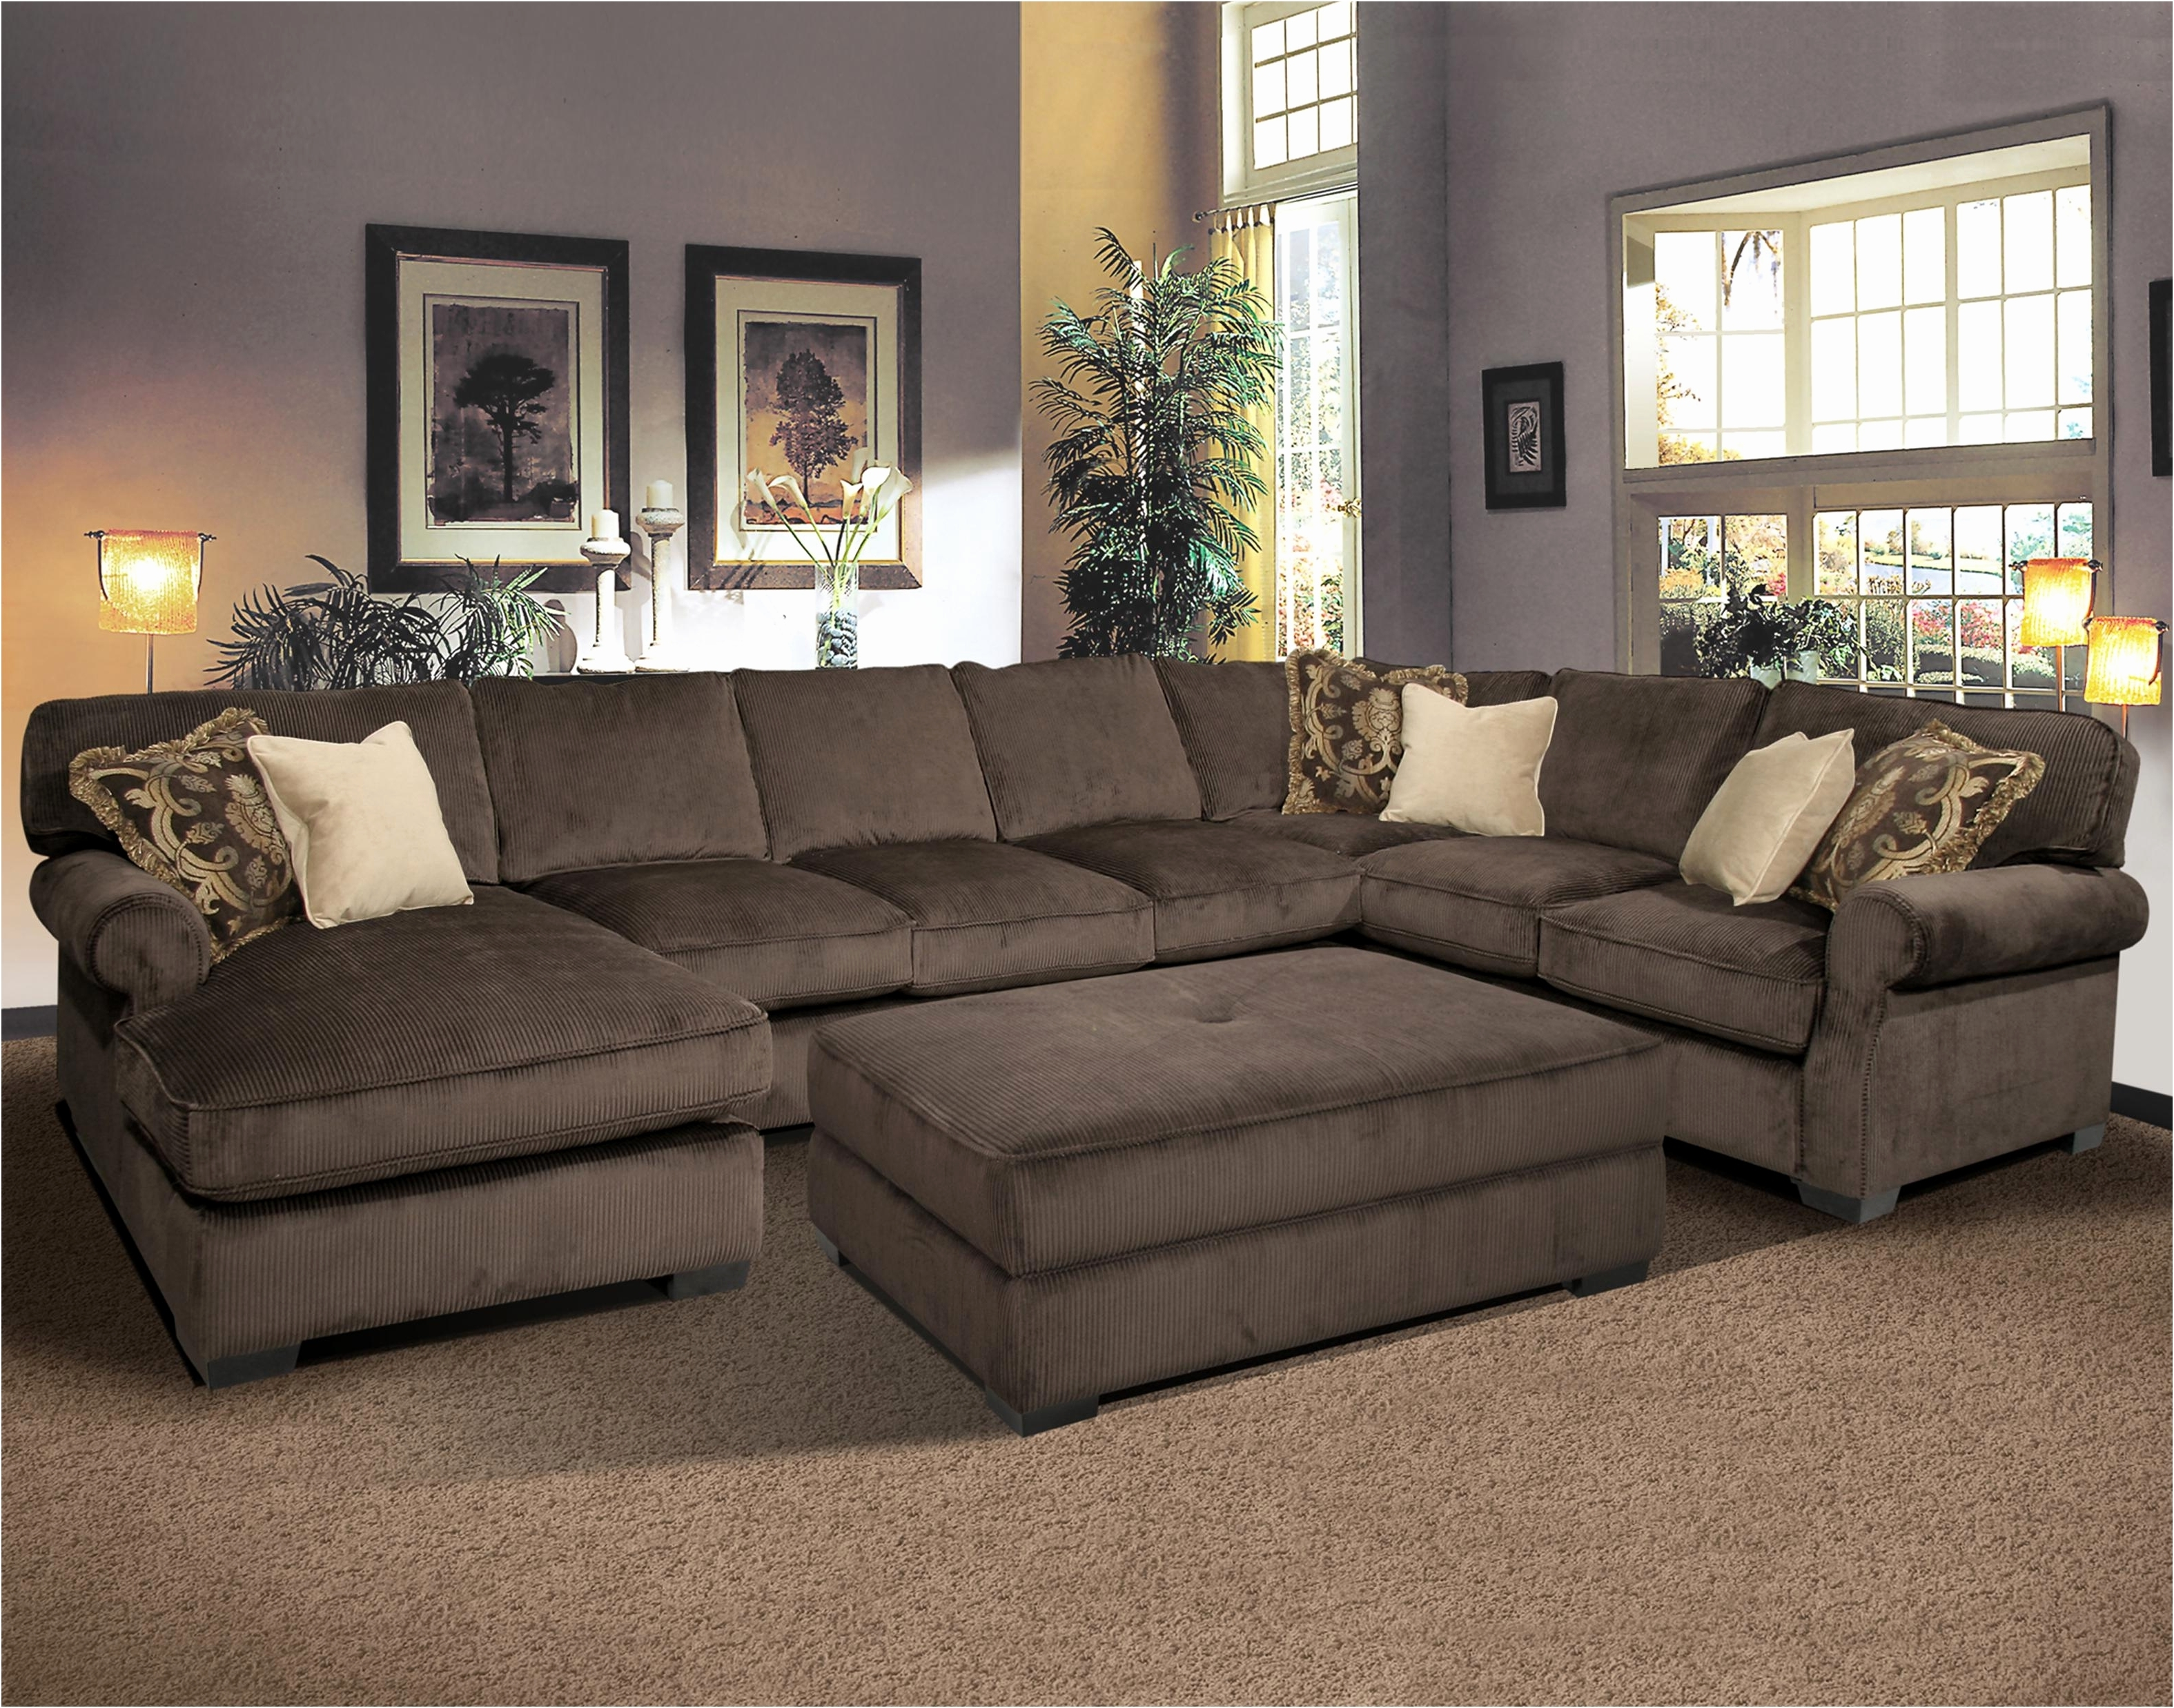 Best Of High Back Sectional Sofas Best Of – Sofa Furnitures | Sofa With Regard To Sectional Sofas With High Backs (View 8 of 10)